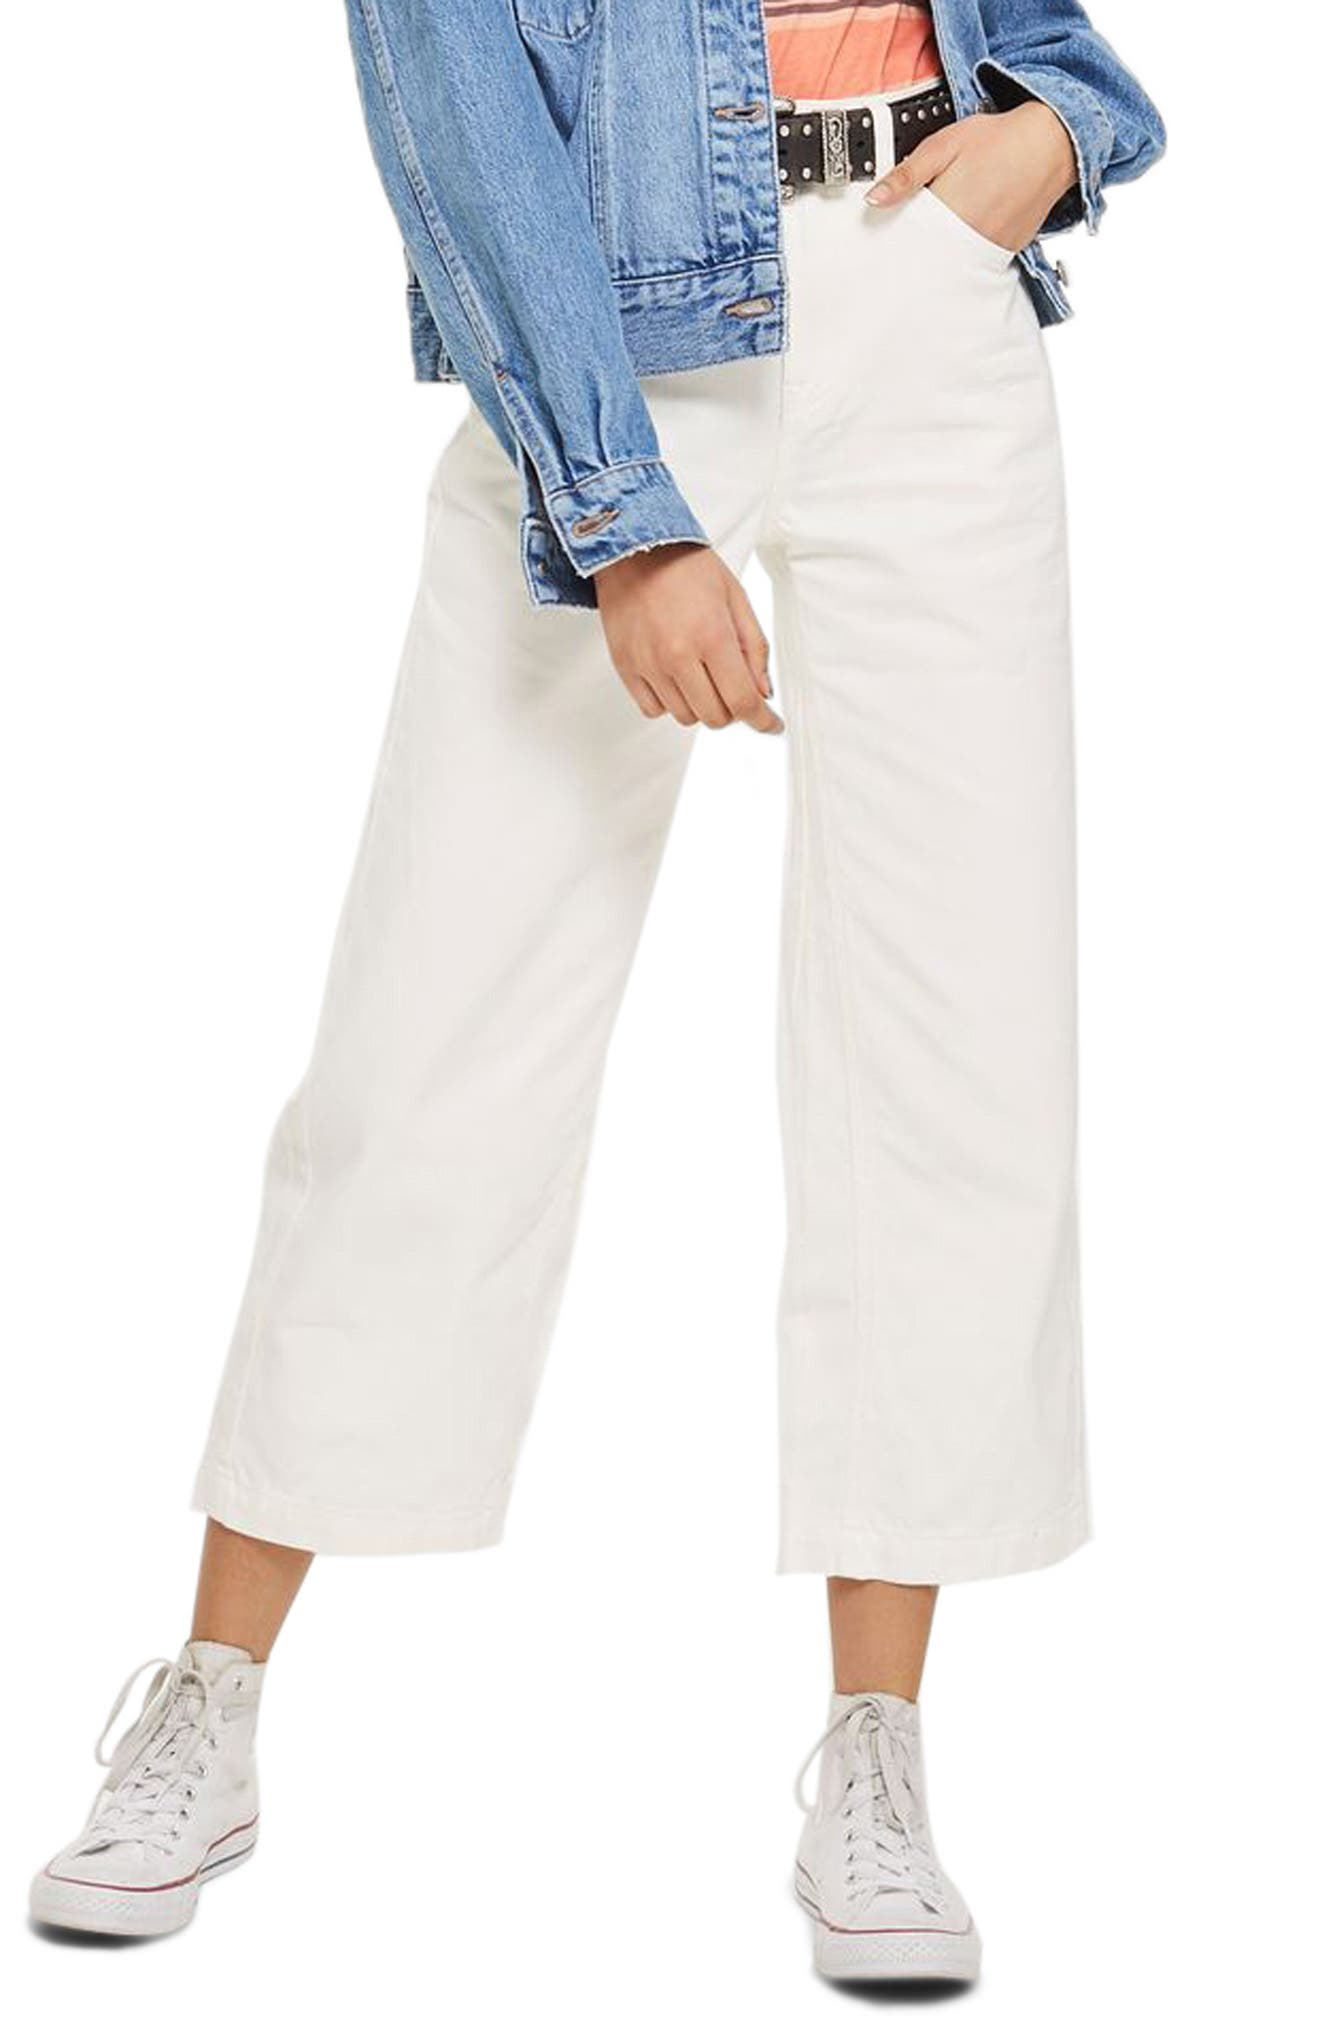 MOTO Cropped Wide Leg Non-Stretch Jeans,                         Main,                         color, 100